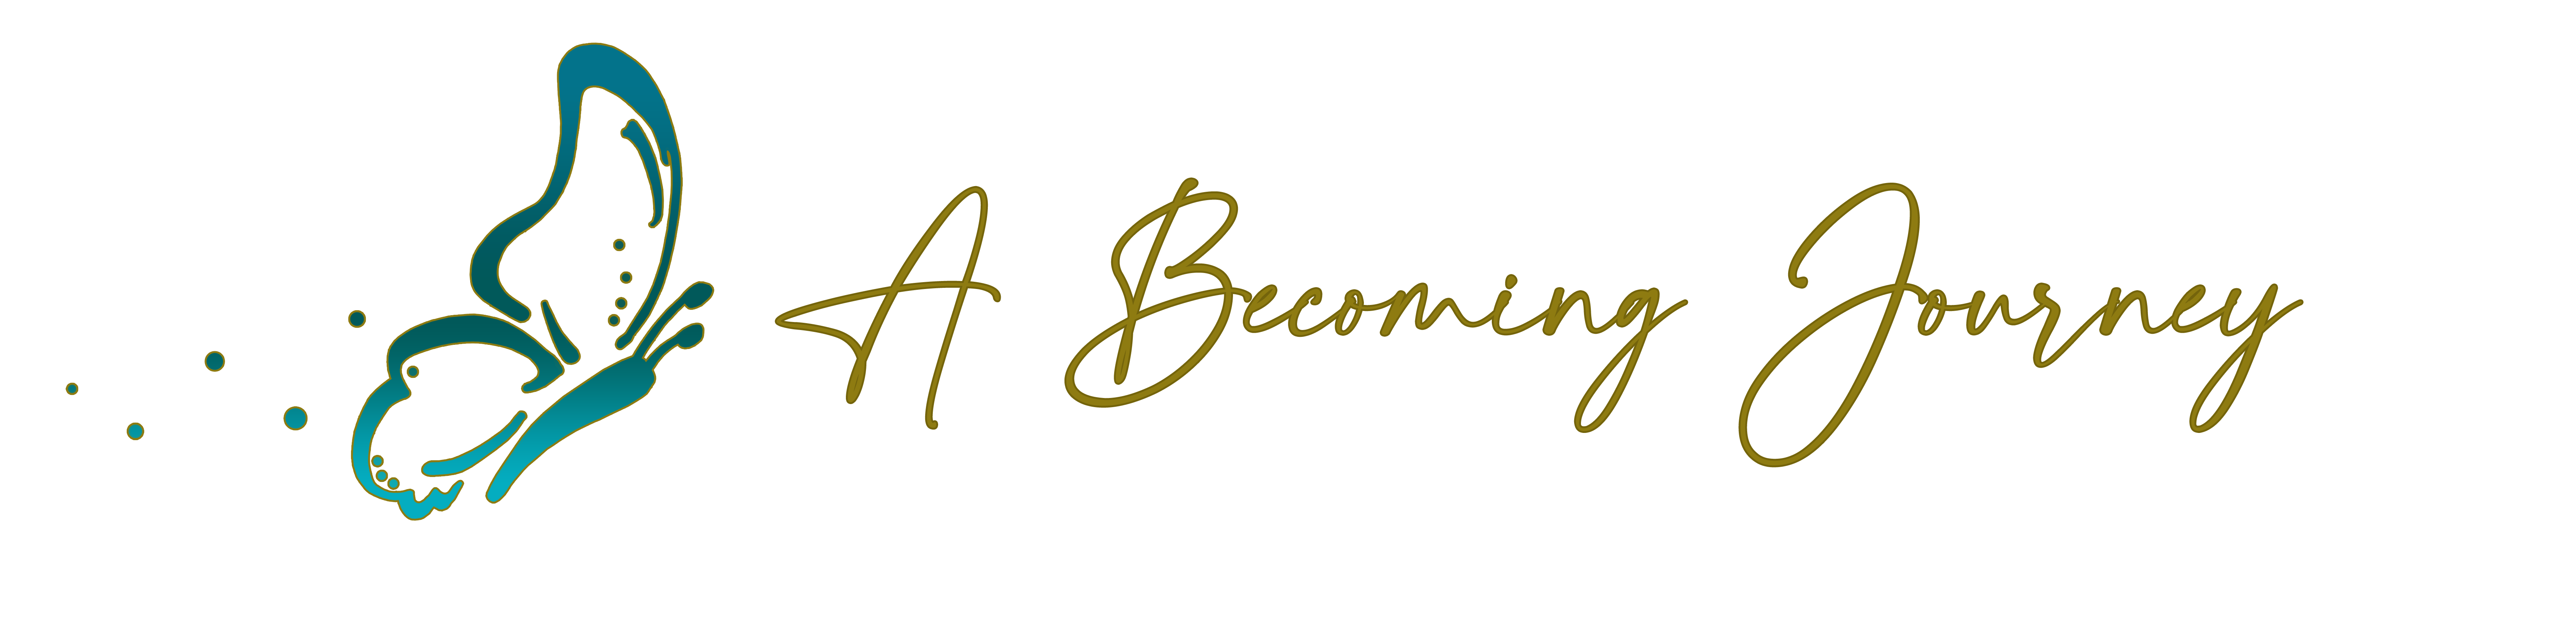 A Becoming Journey